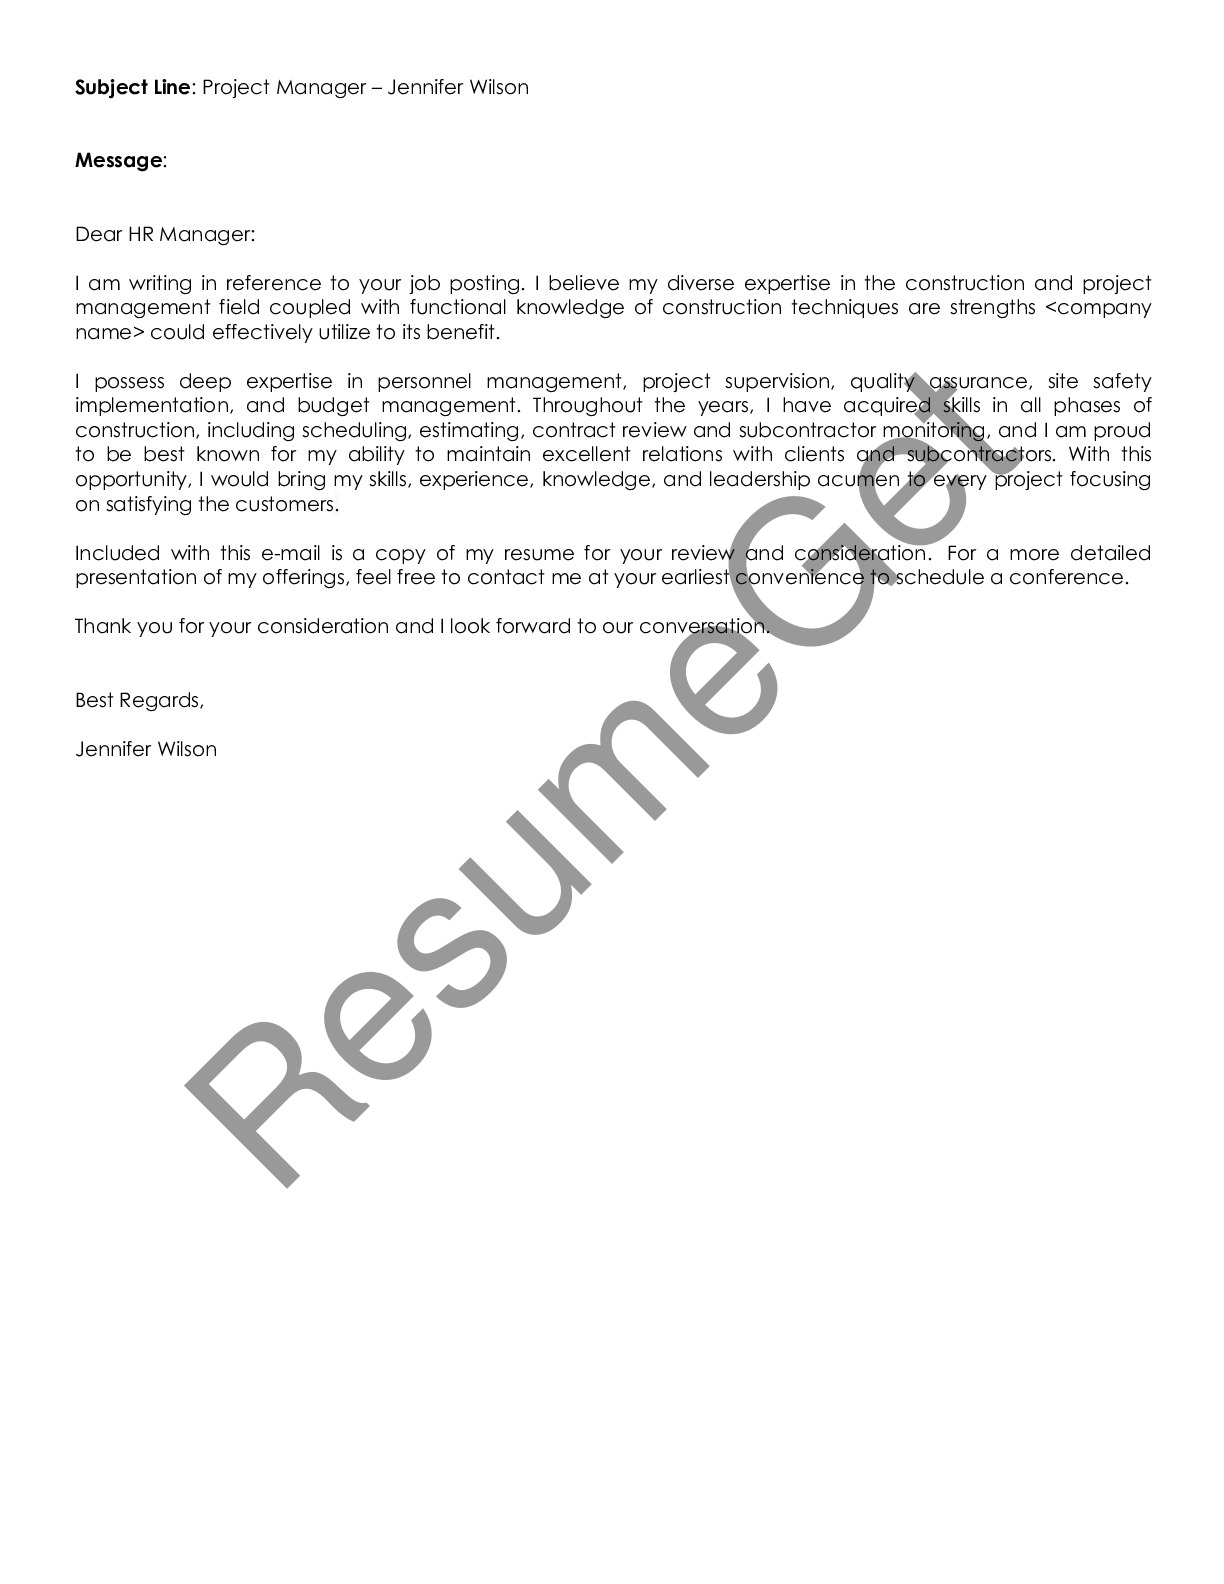 Email Cover Letter for Project Manager